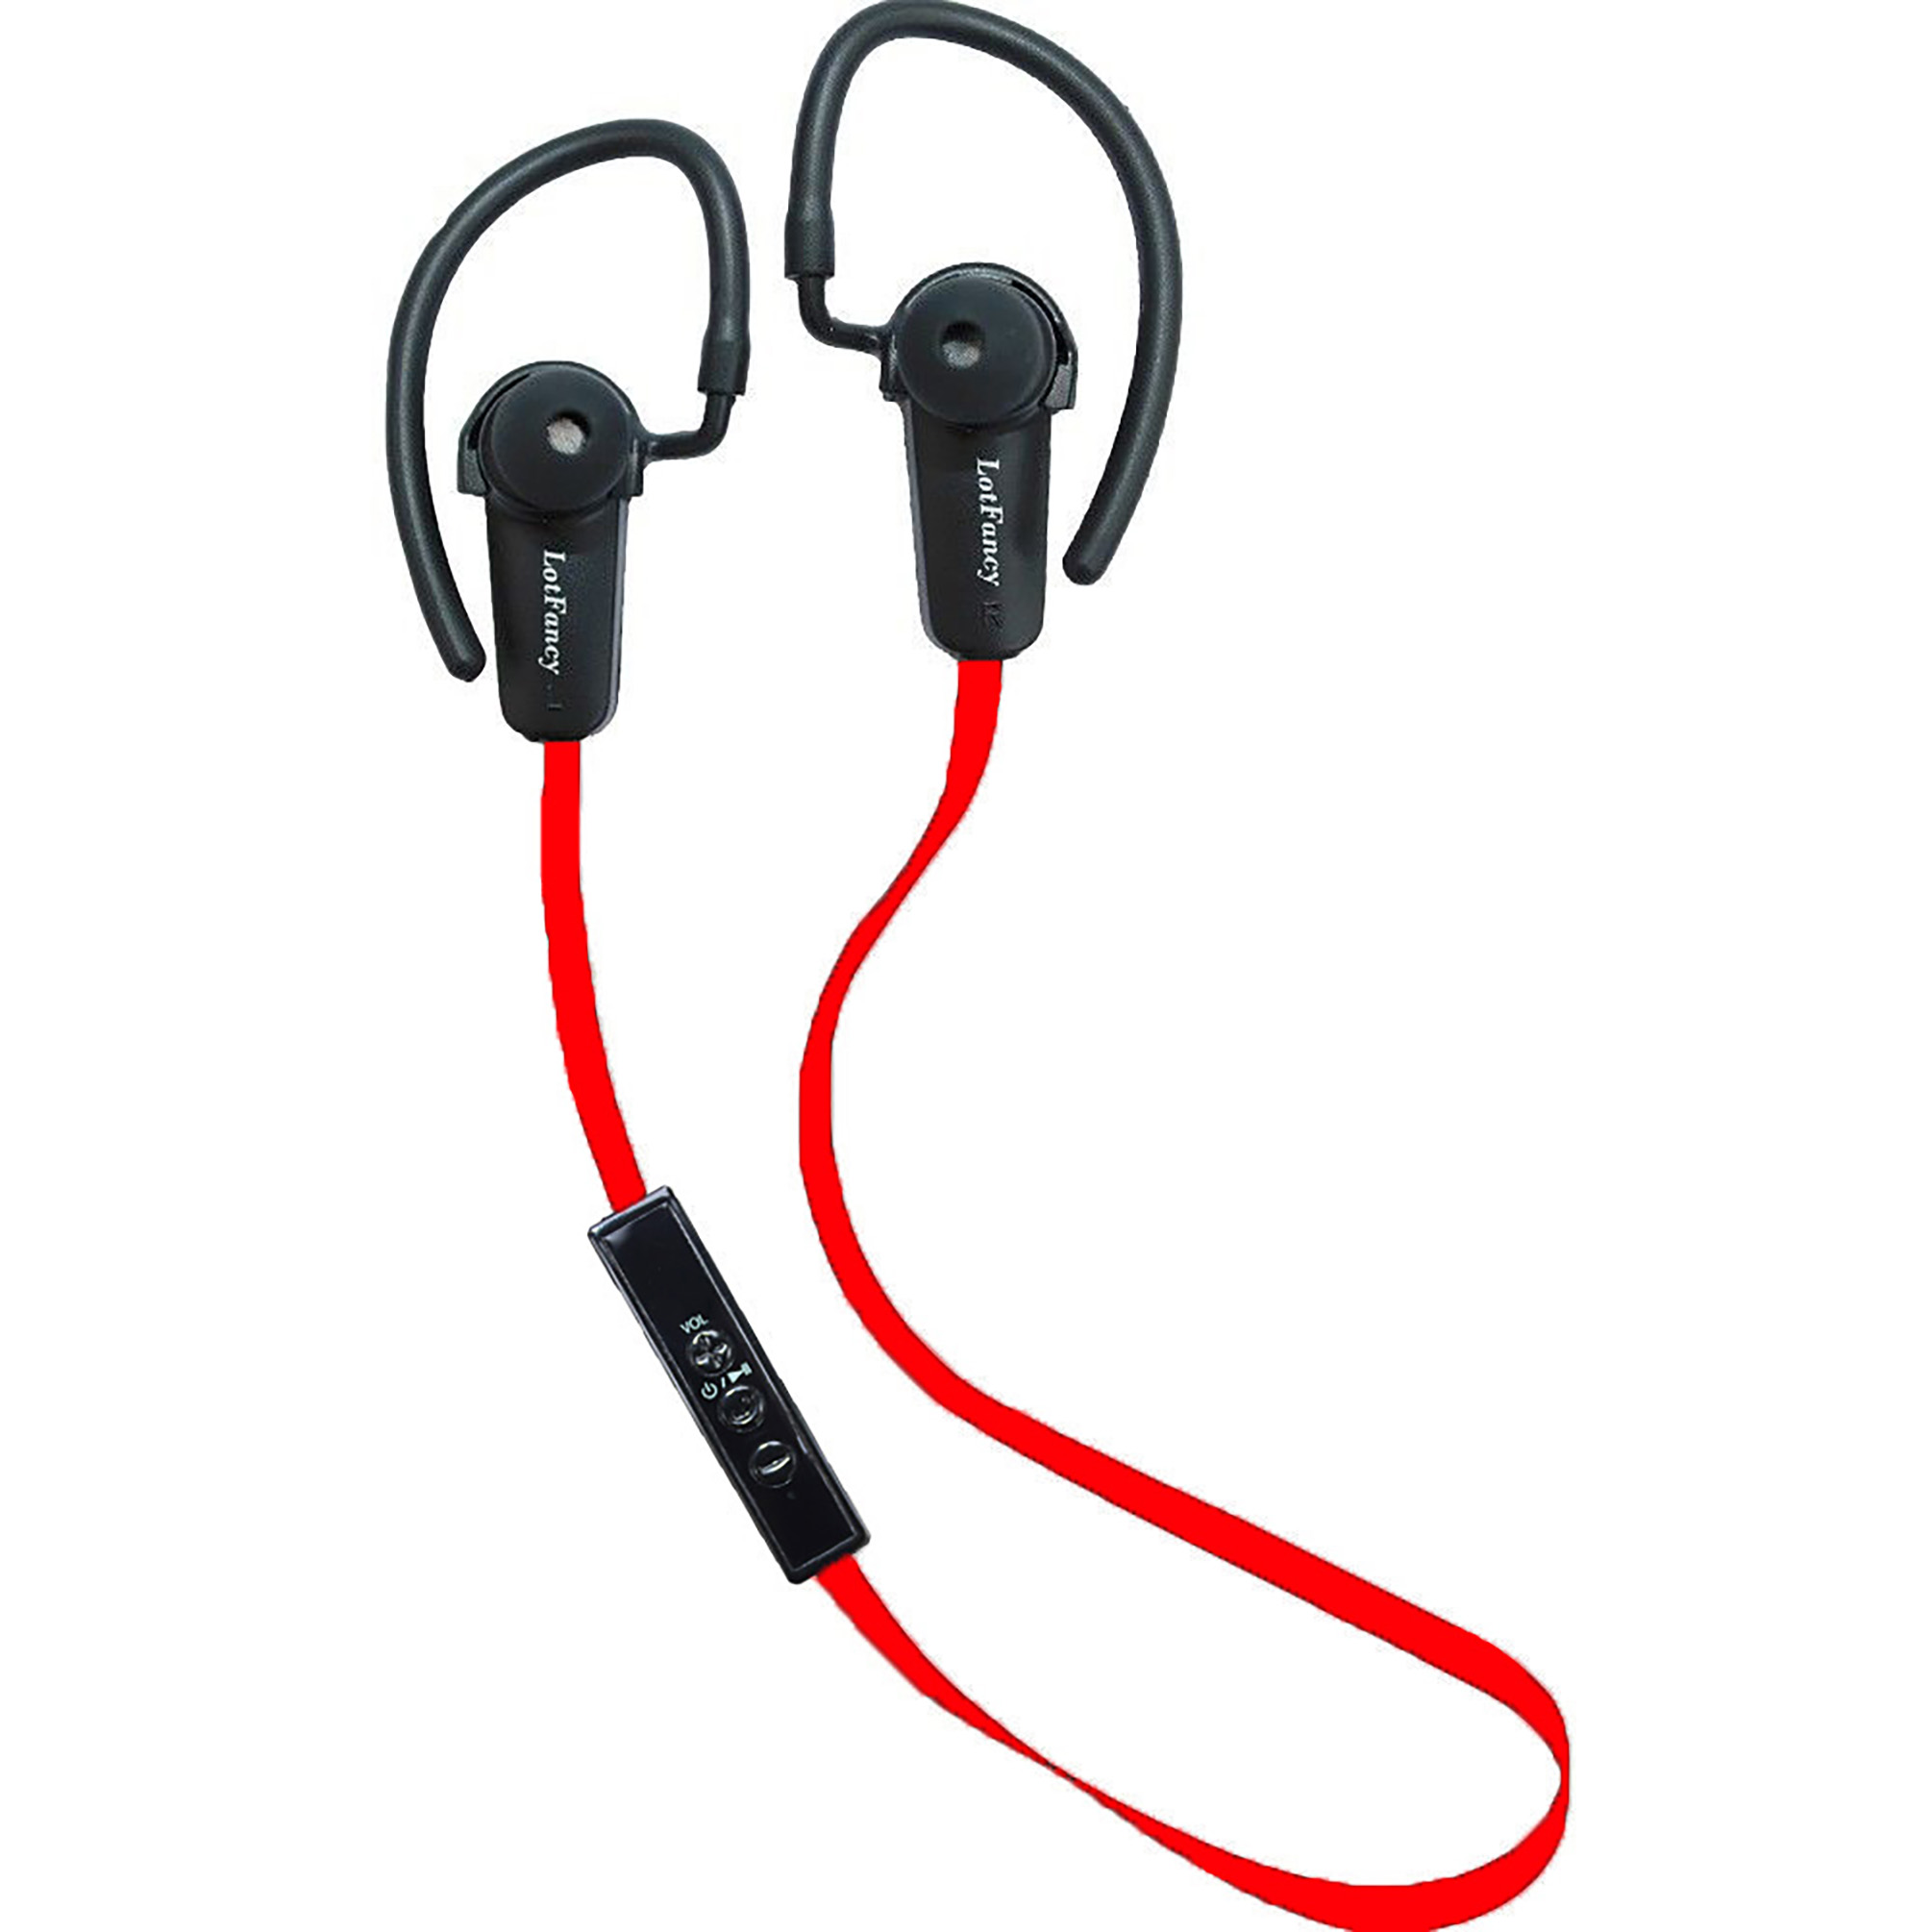 Bluetooth earphones type c - exercise earphones